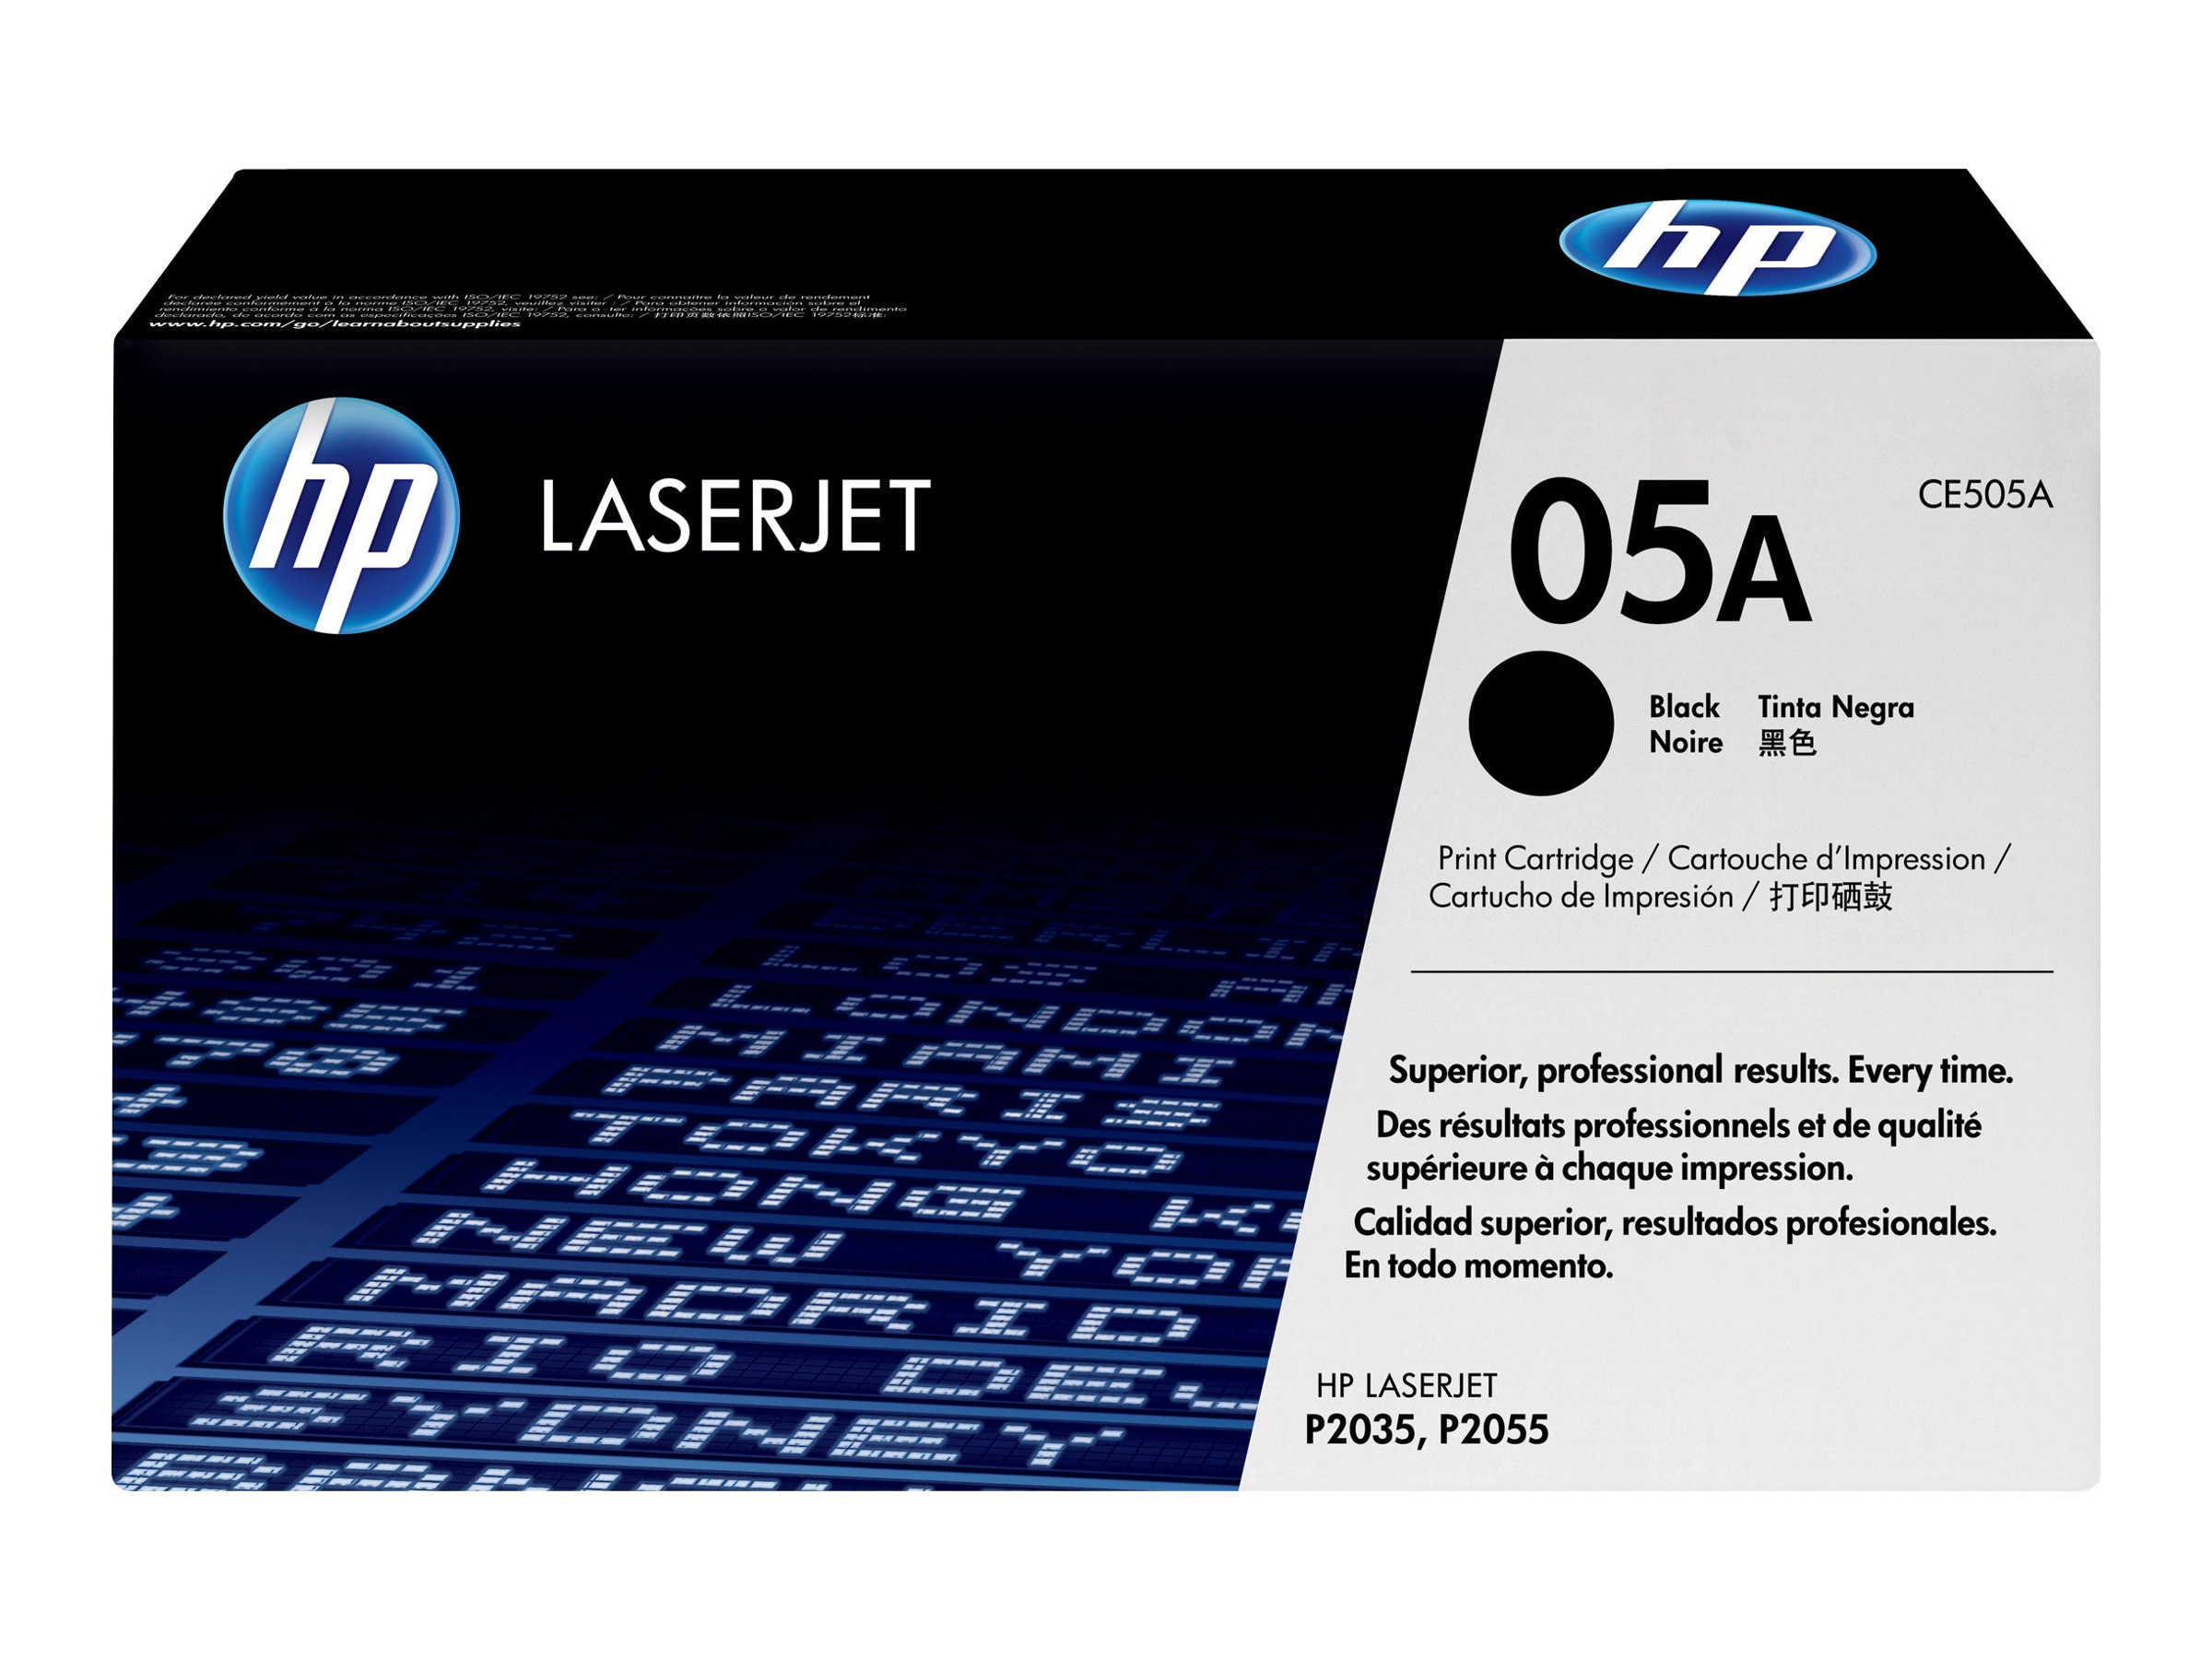 HP 05A (CE505A) Black Original LaserJet Toner Cartridge for HP LaserJet P2035 & P2055 Series Printers